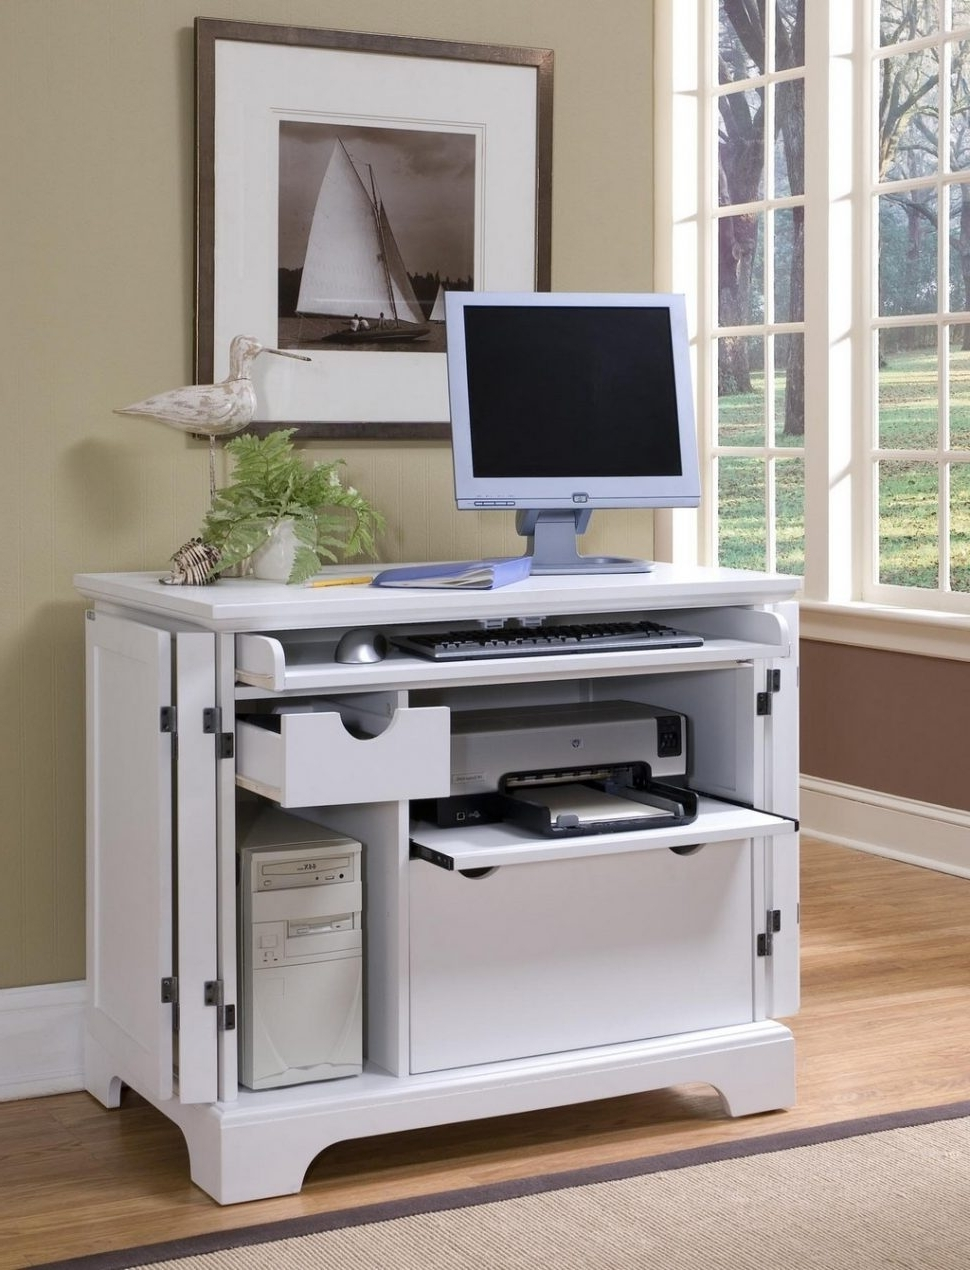 Compact Computer Desks Pertaining To 2018 Desk : Cheap Corner Desks For Small Spaces Compact Computer Desk (View 4 of 20)